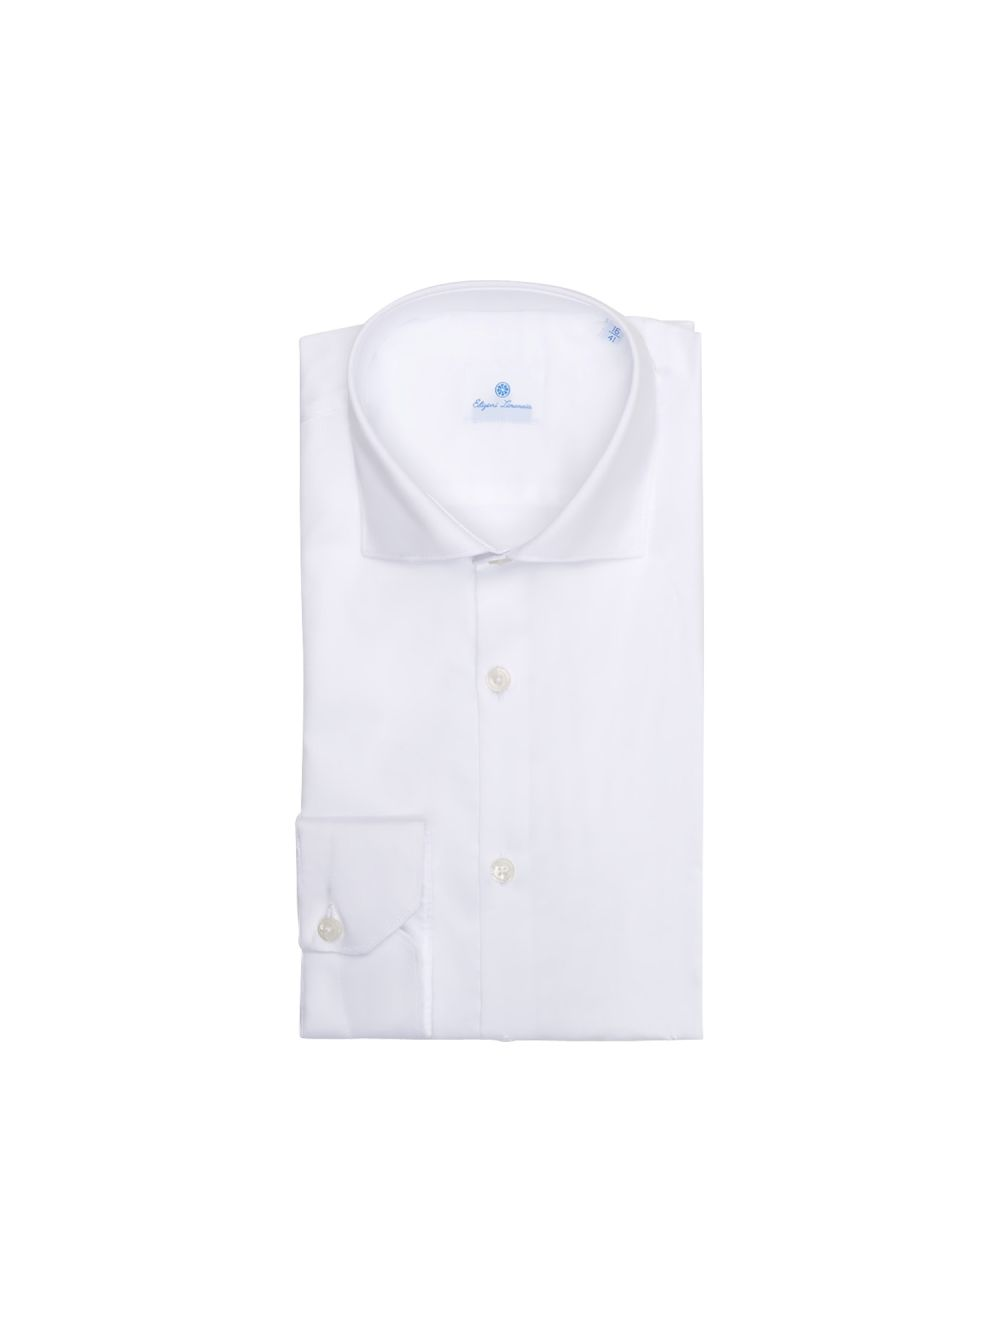 CAMICIA BARBATI CLASSICA VESTIBILITA' REGULAR FIT COLLO ITALIANO